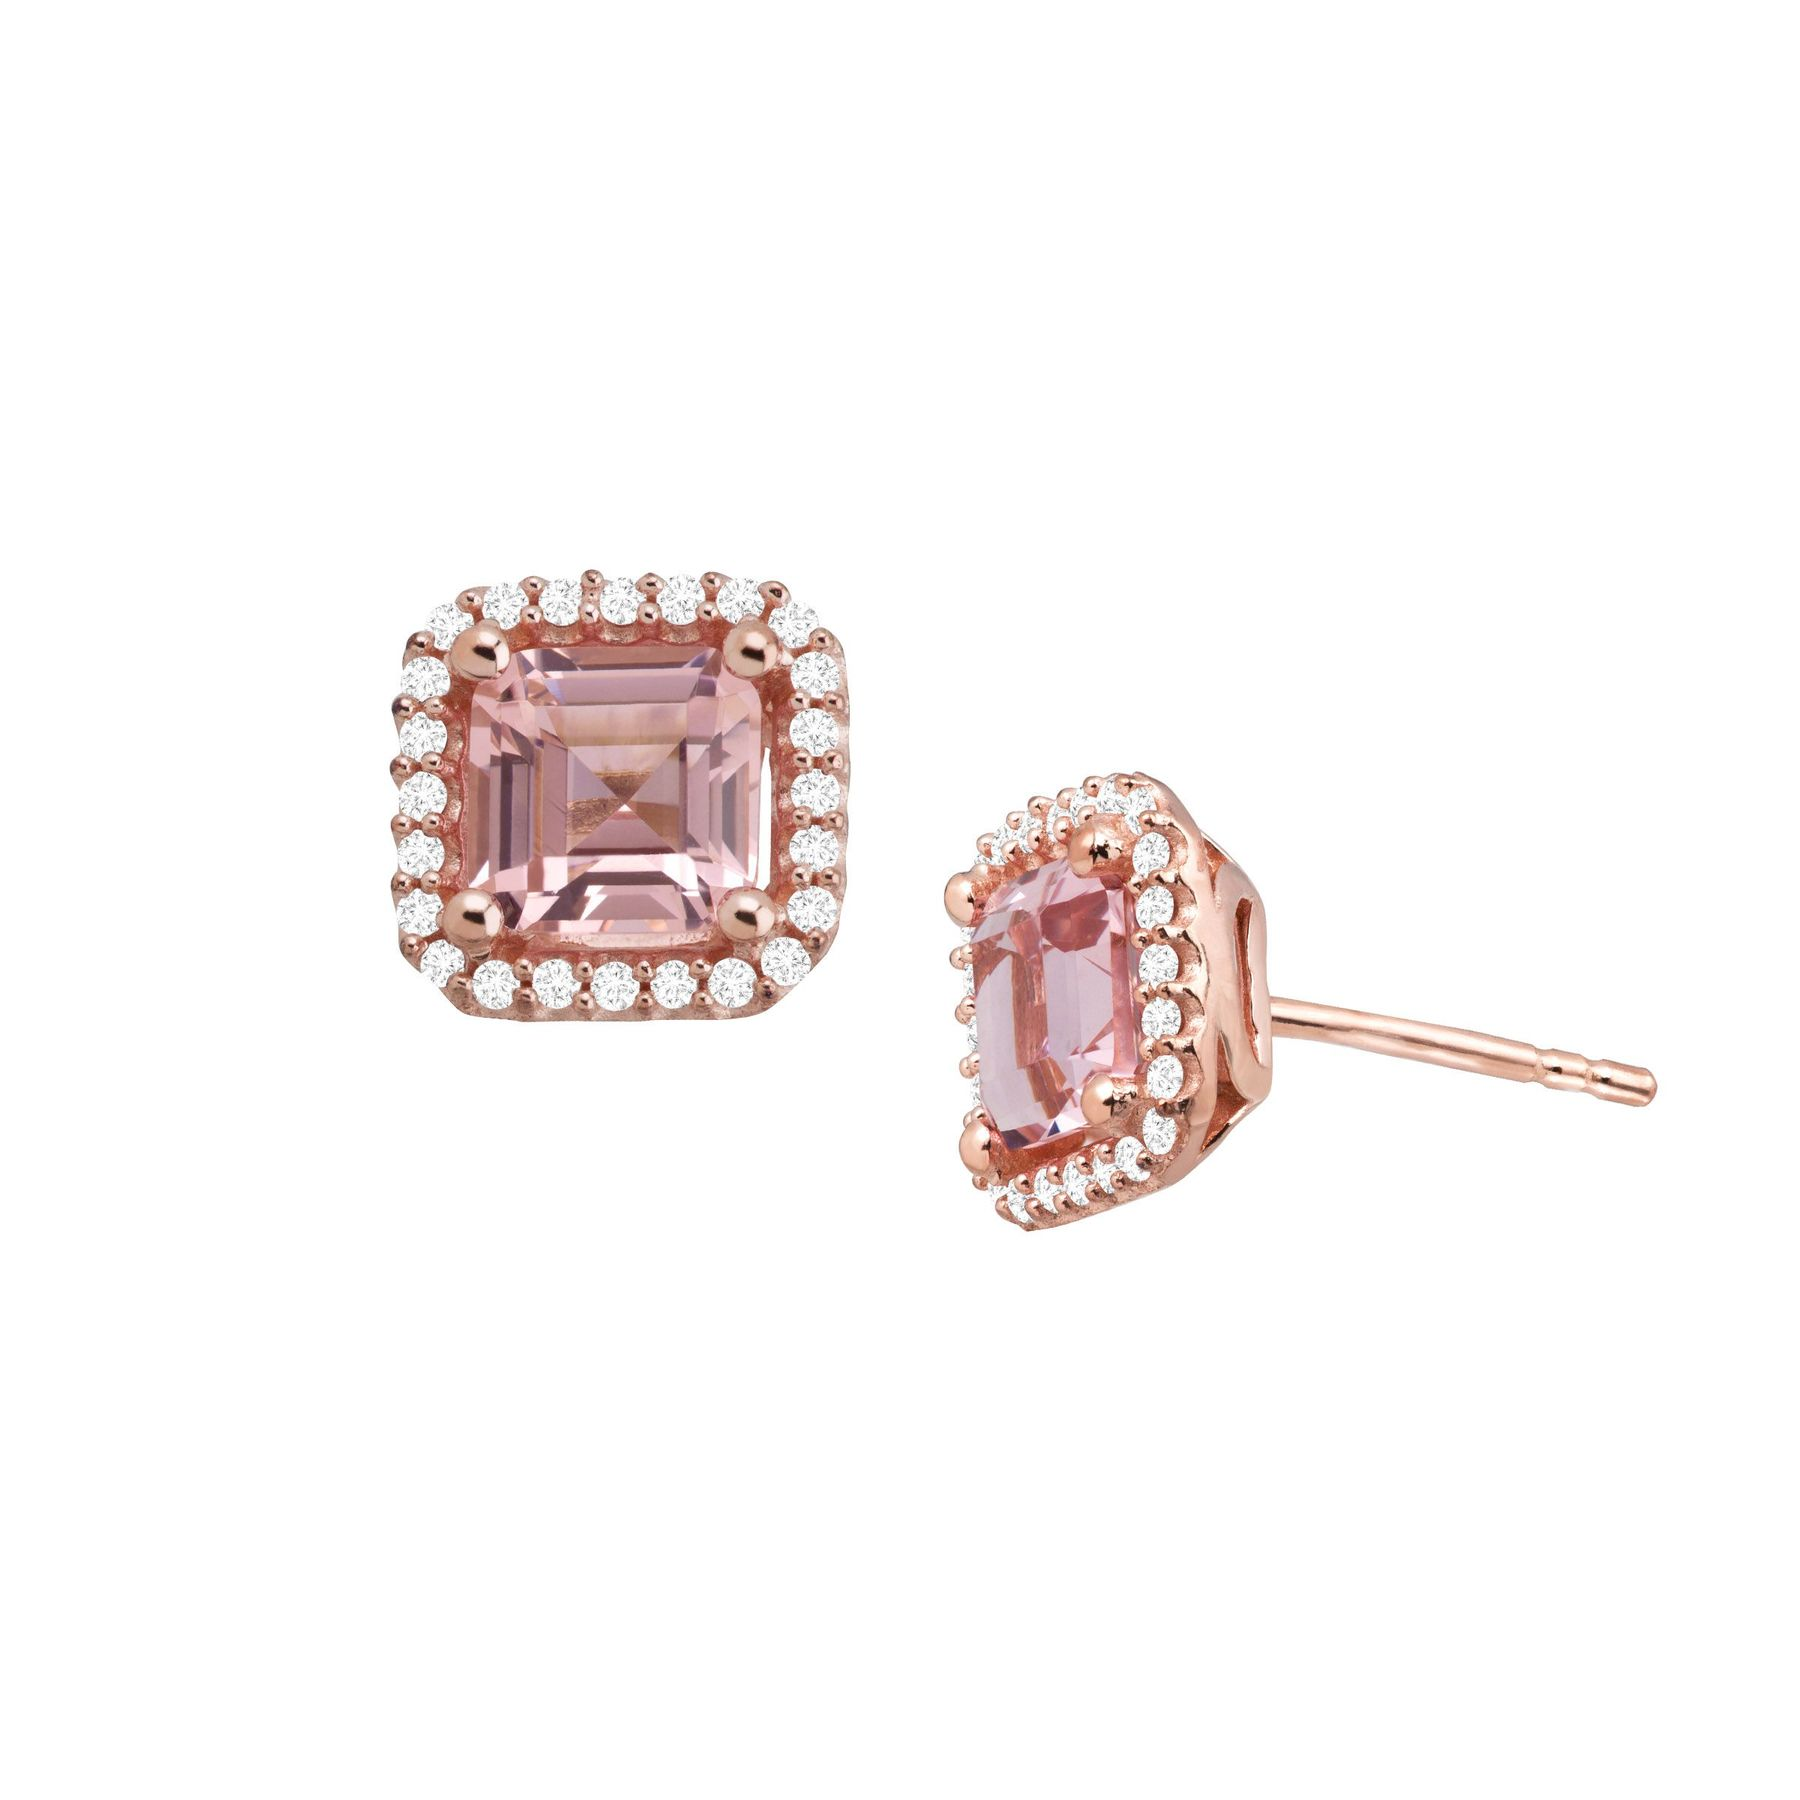 earring designs silver earrings product morganite sterling stud jewelry push laurie sarah off back filigree with in